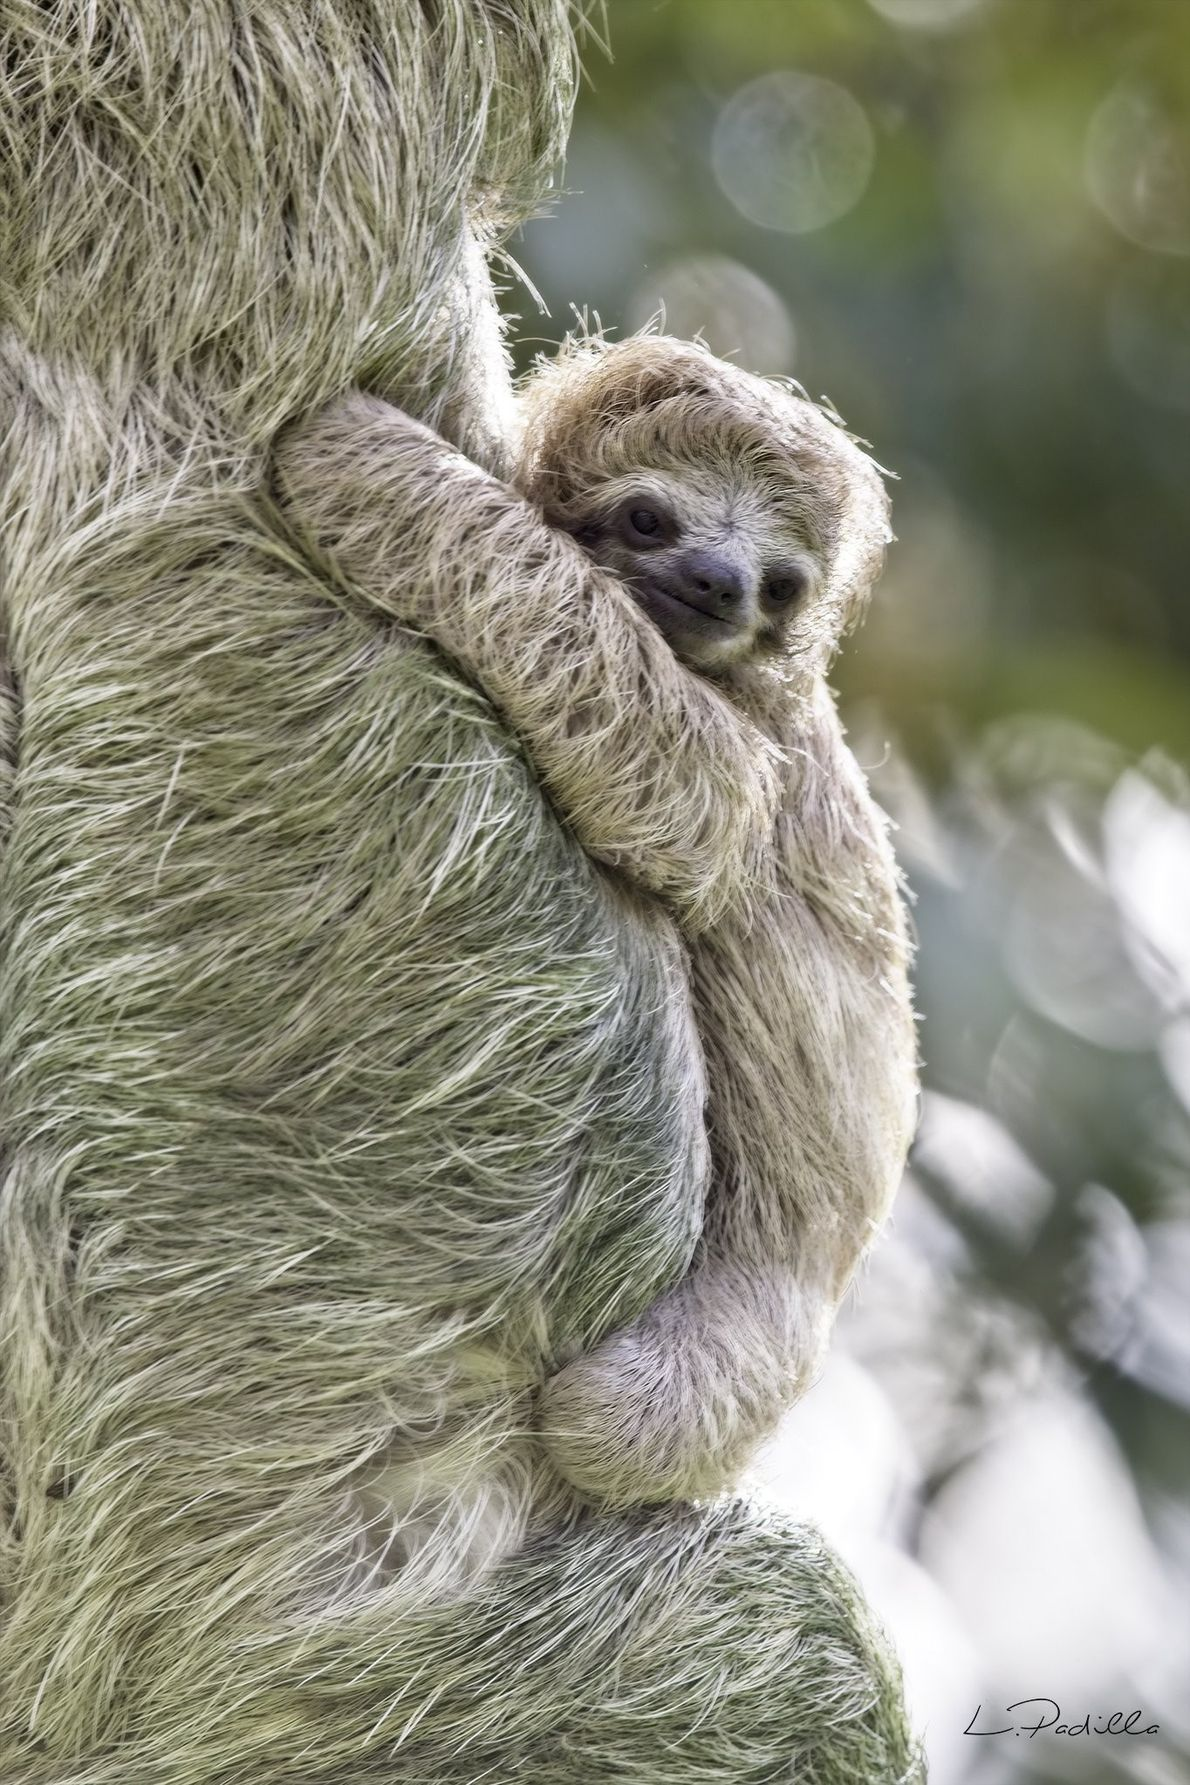 Your Shot photographer Luis Padilla photographed this sloth pair during his trip to Costa Rica.